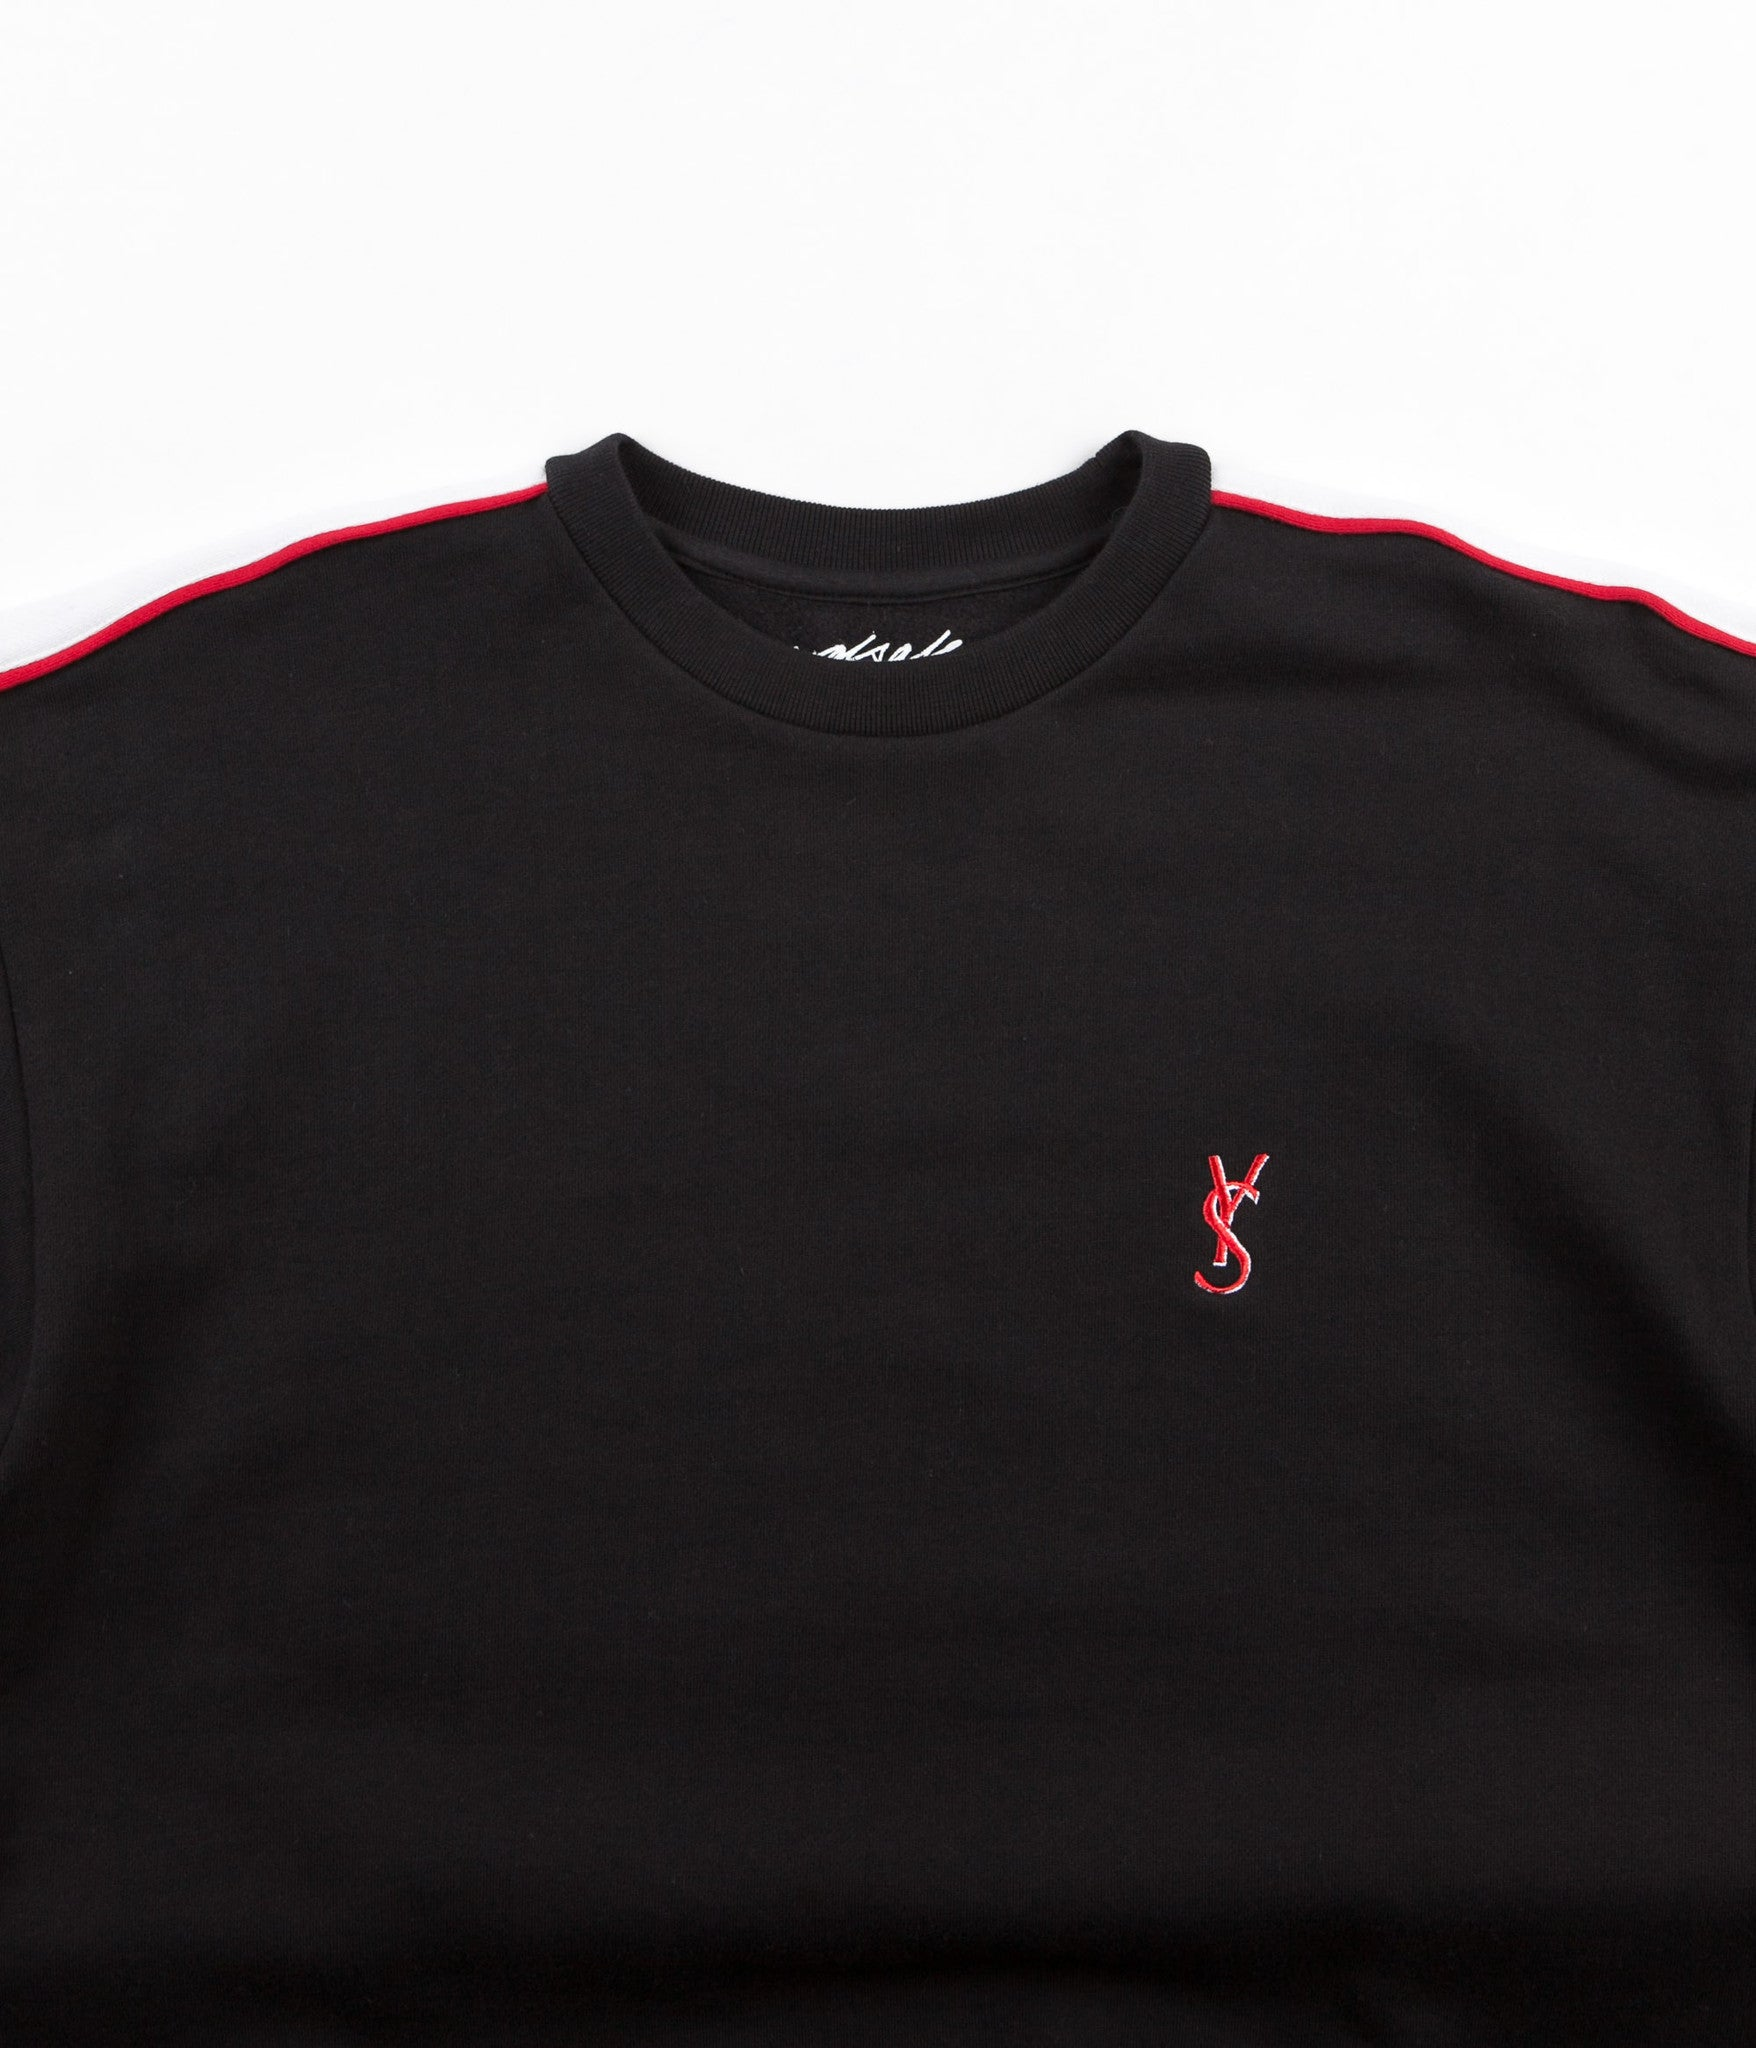 Yardsale Airforce Crewneck Sweatshirt - Black